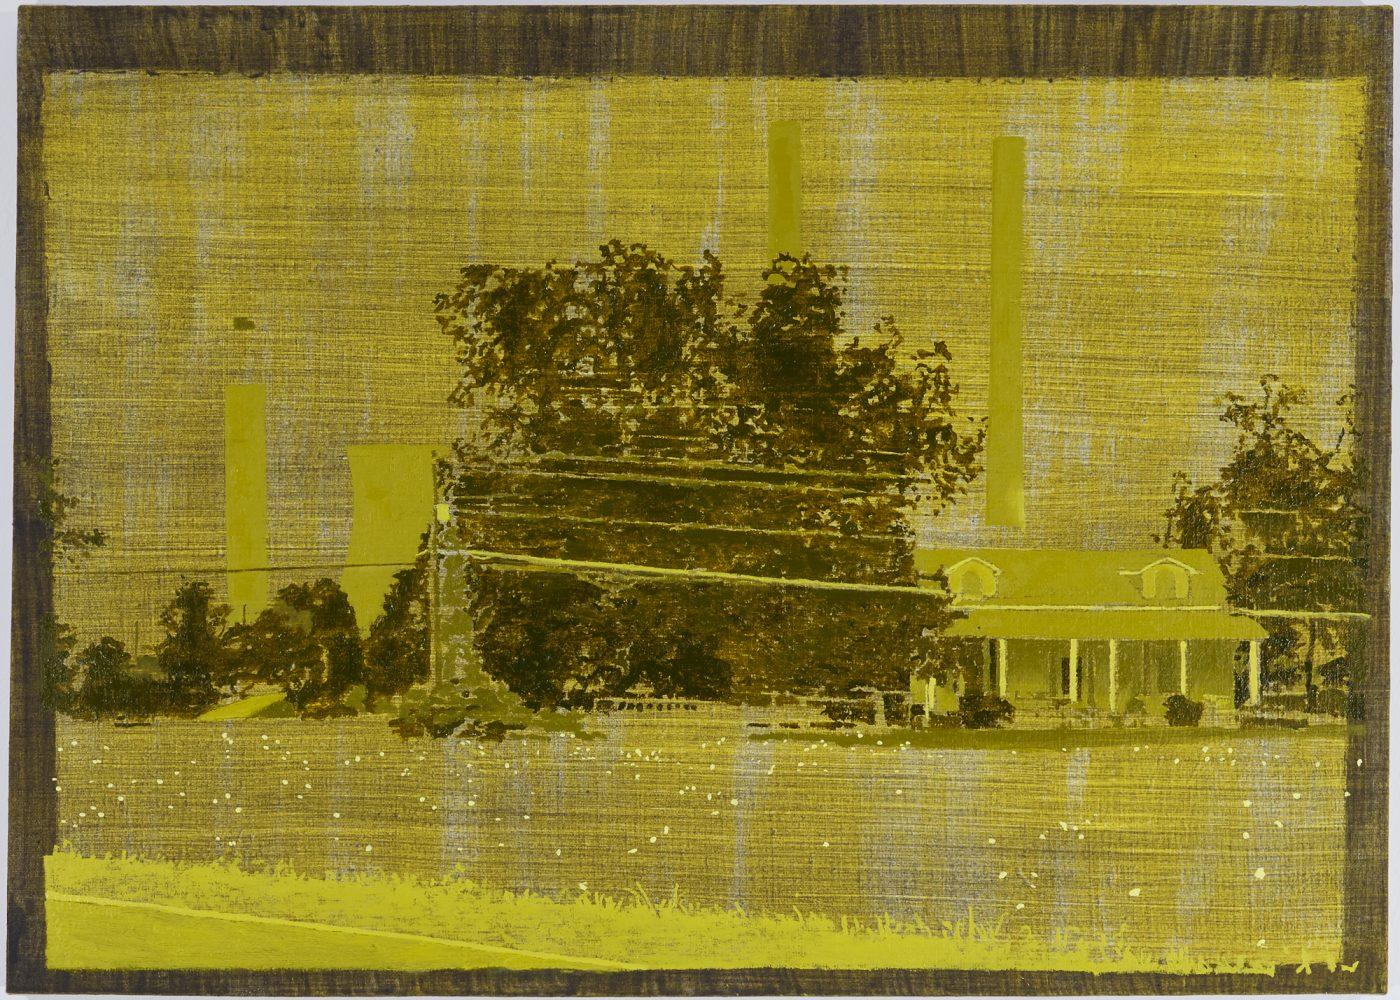 Plant Bowen,Euharlee, Georgia(tobacco fields),20.25 by 28.25 in,oil, ash, and acrylic on linen, 2017.